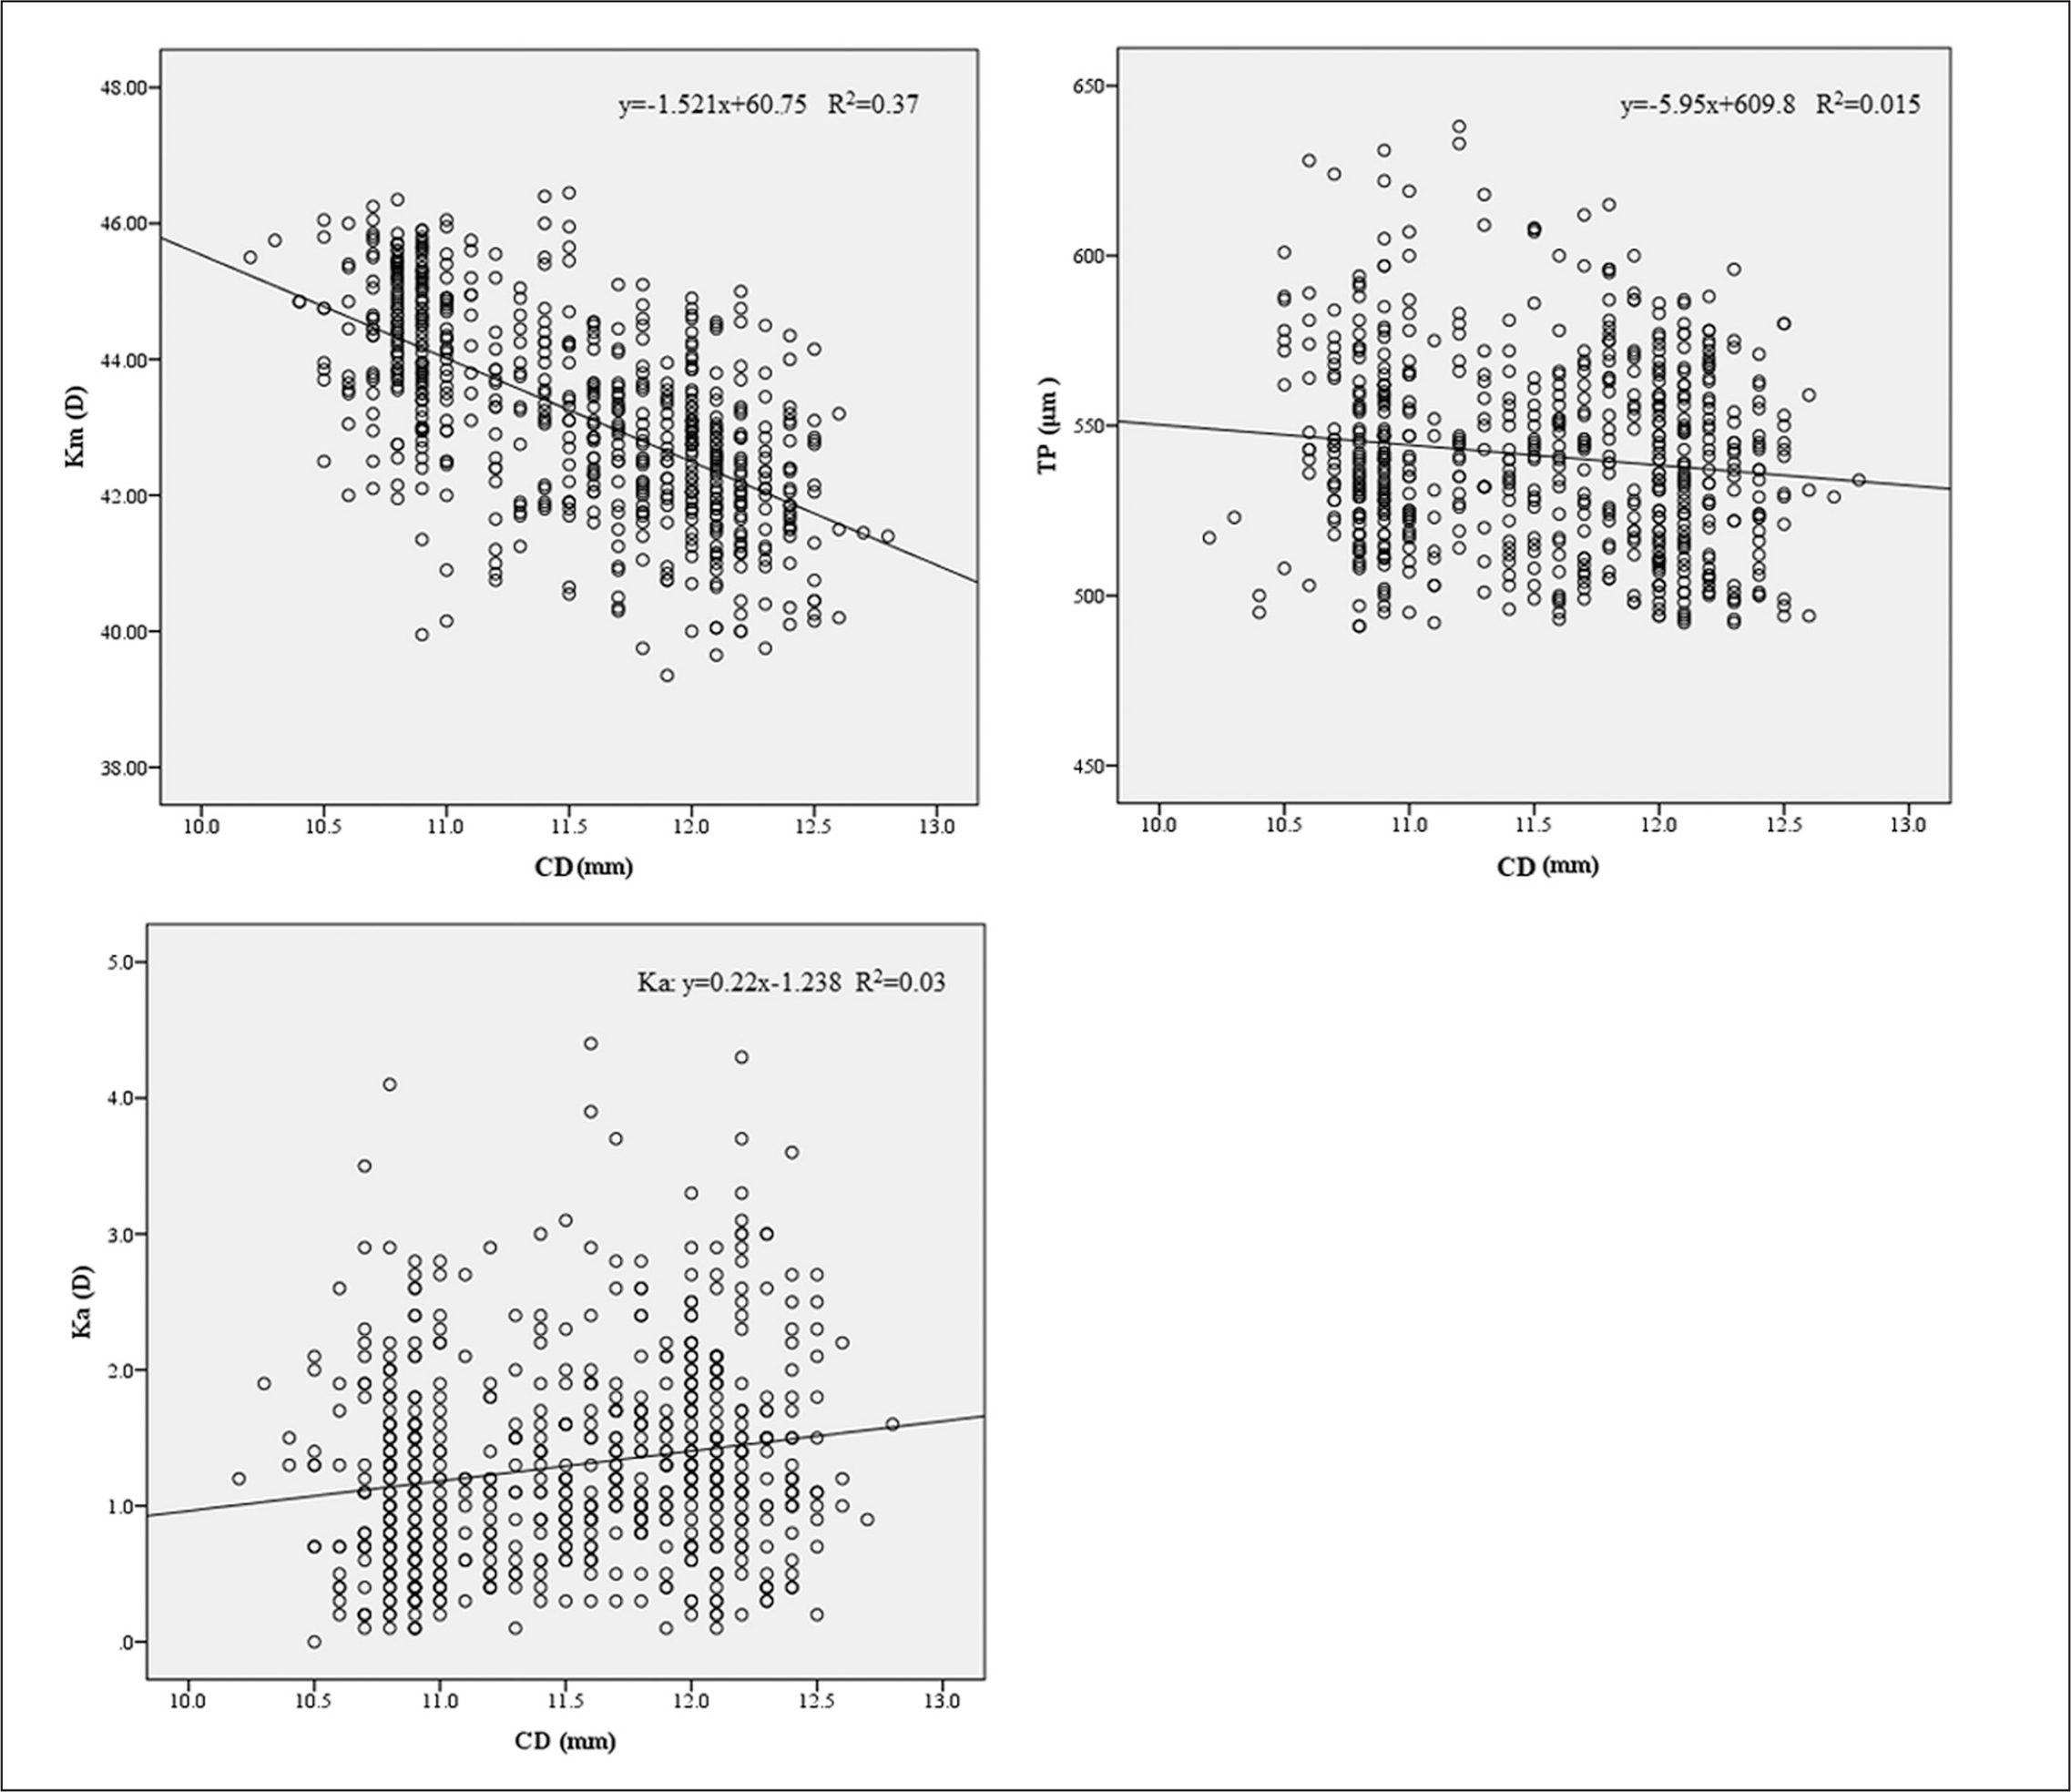 Scatter plots of the distribution of mean central corneal power (Km), the thinnest pachymetry (TP) and the corneal astigmatism (Ka) with respect to corneal diameter (CD). D = diopters